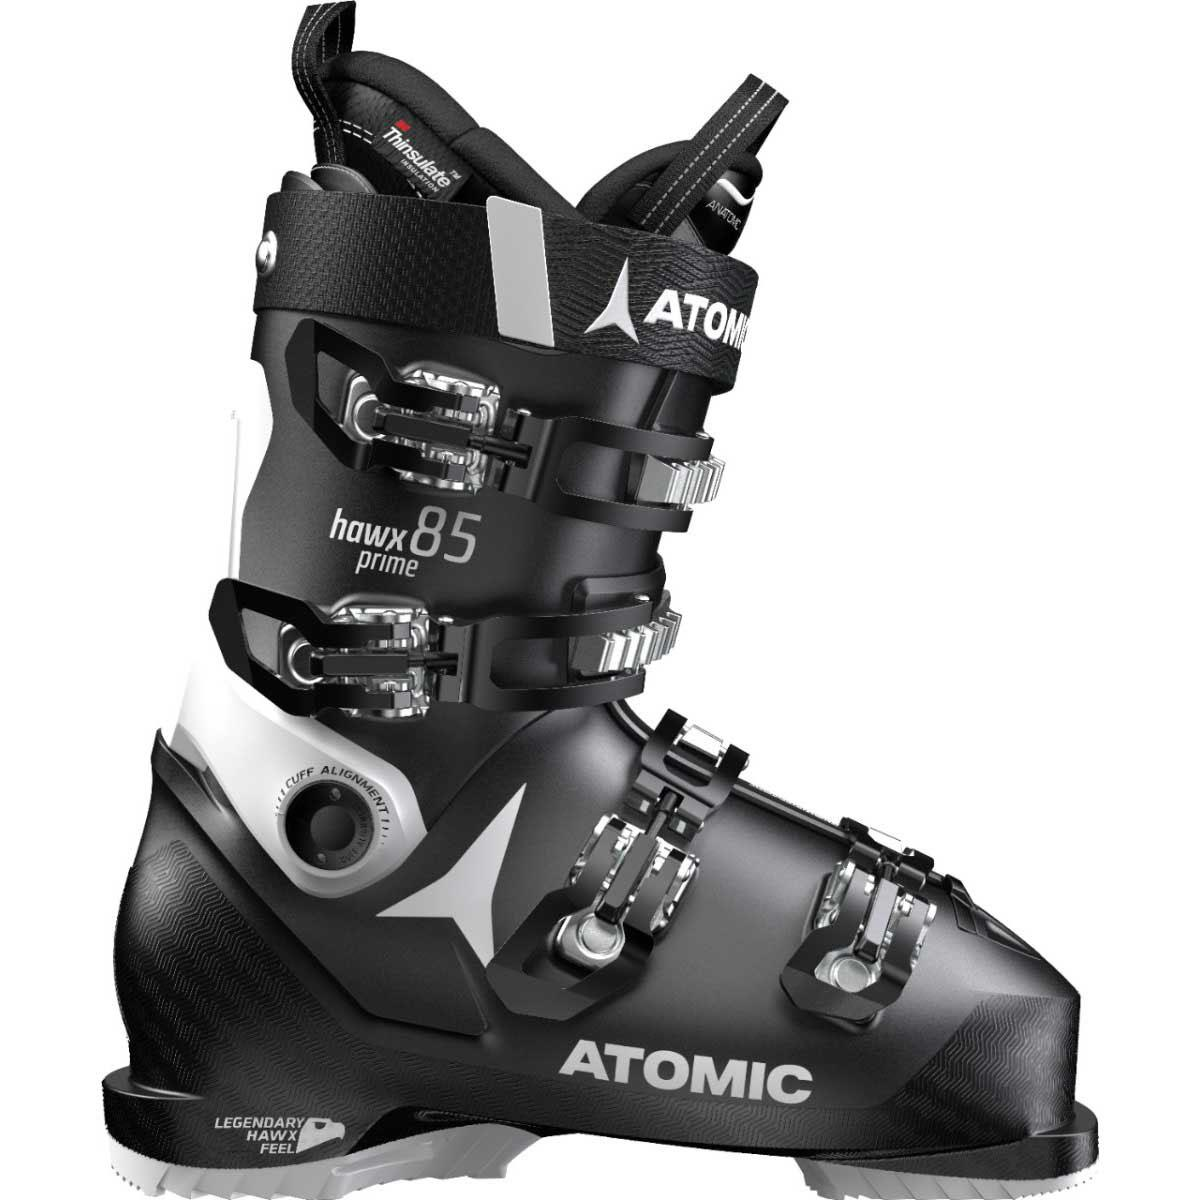 Atomic women's HAWX Prime 85 ski boot in black and white